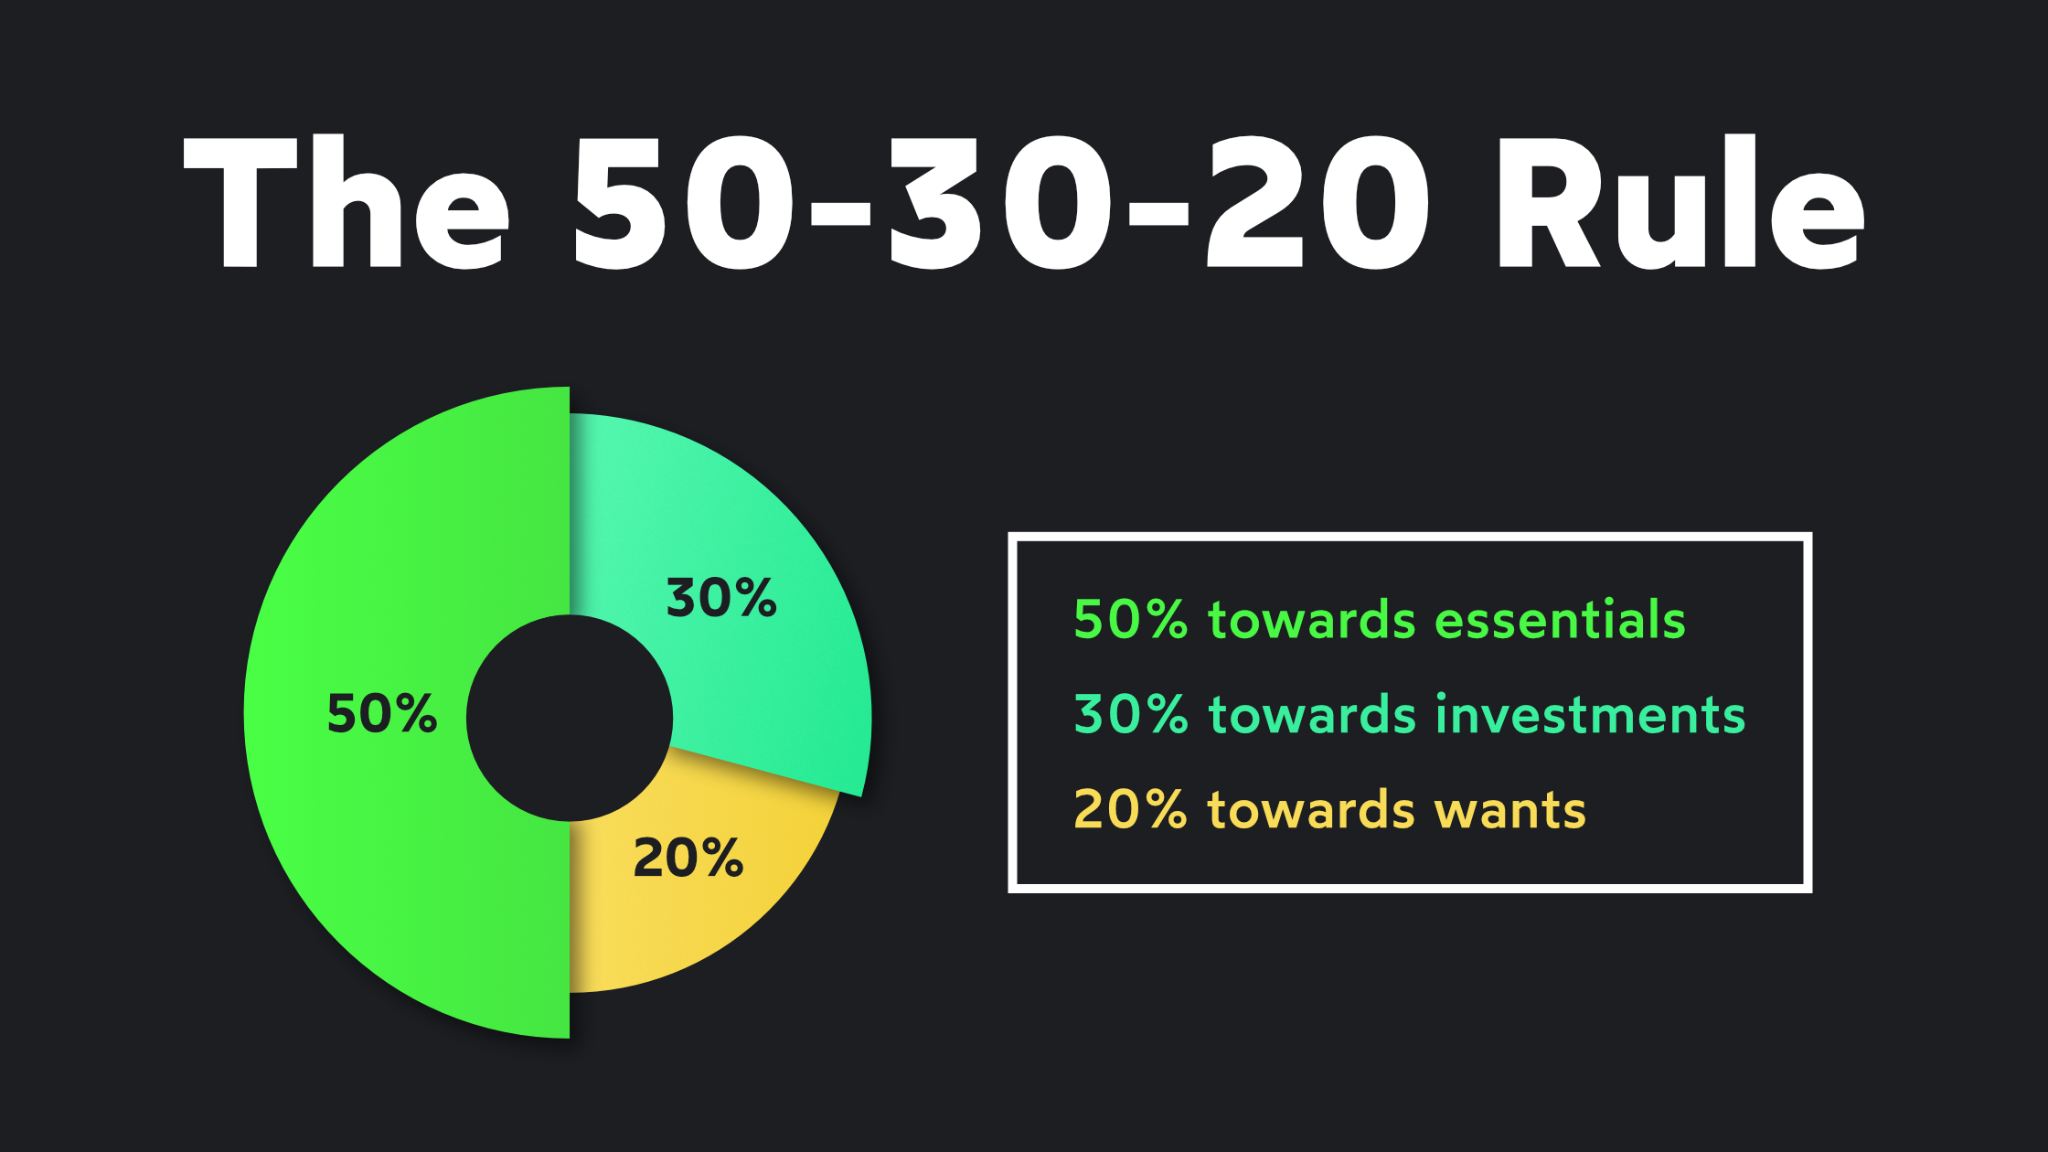 The 50-30-20 Rule